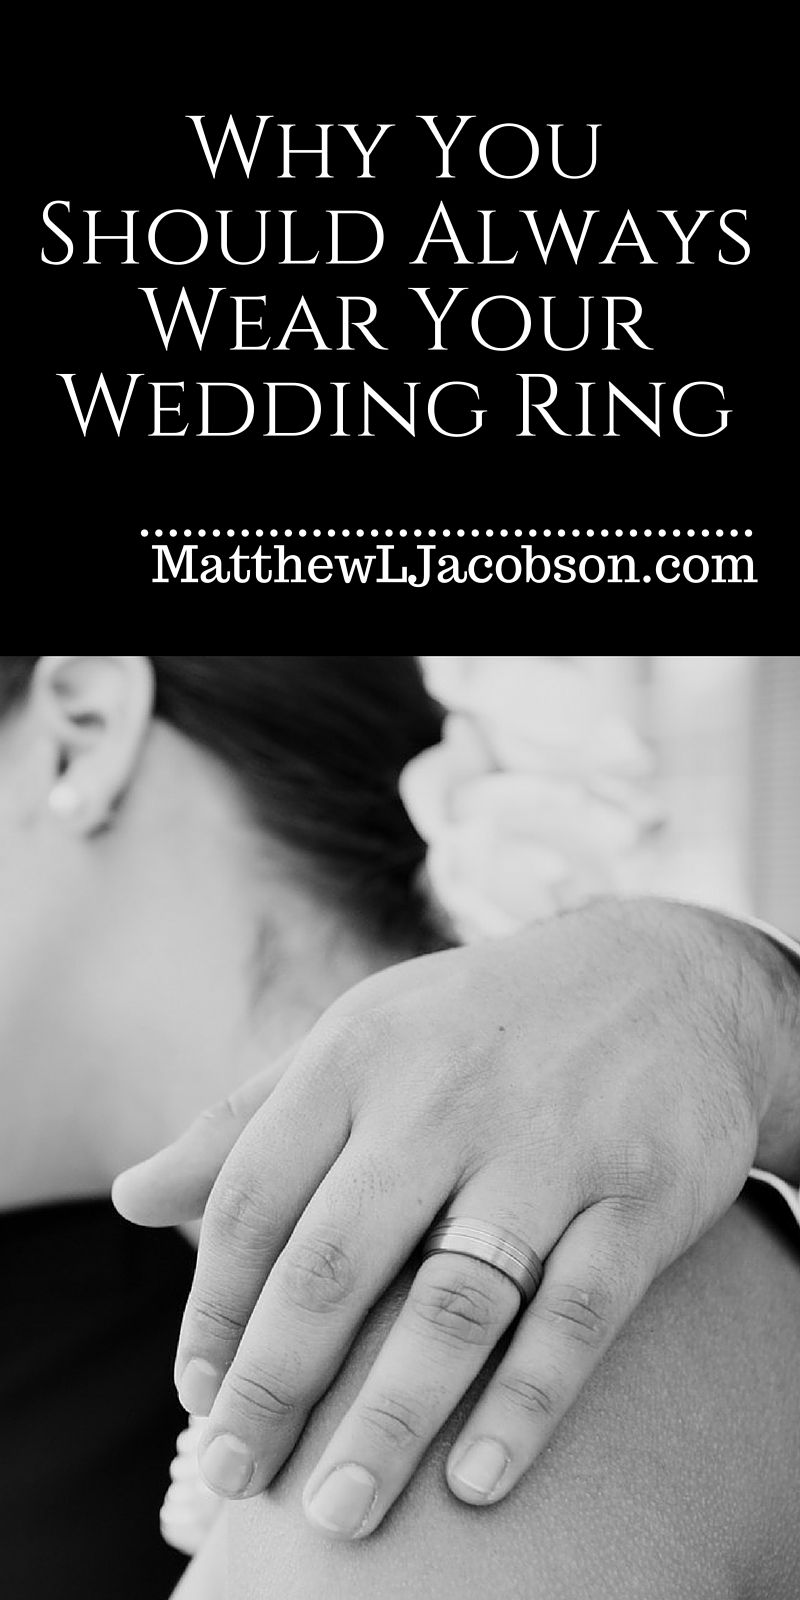 Does It Matter Anymore If You Don T Bother Wearing Your Wedding Ring On A Regular Basis